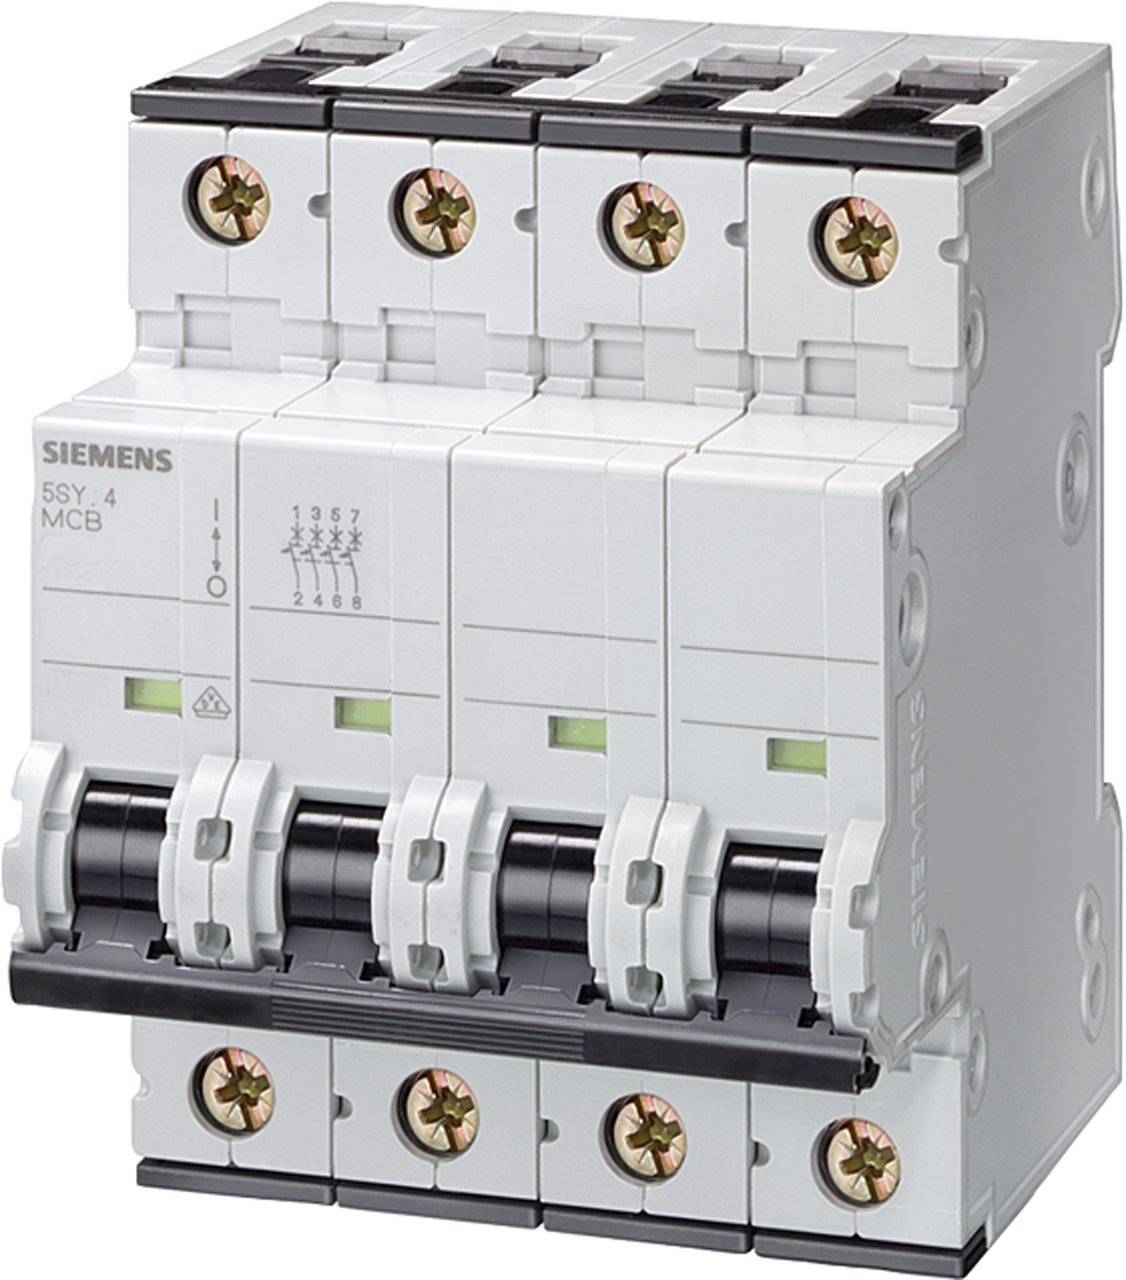 1.6 Ampere Maximum UL 1077 Rated Siemens 5SY64157 Supplementary Protector DIN Rail Mounted Tripping Characteristic C 4 Pole Breaker